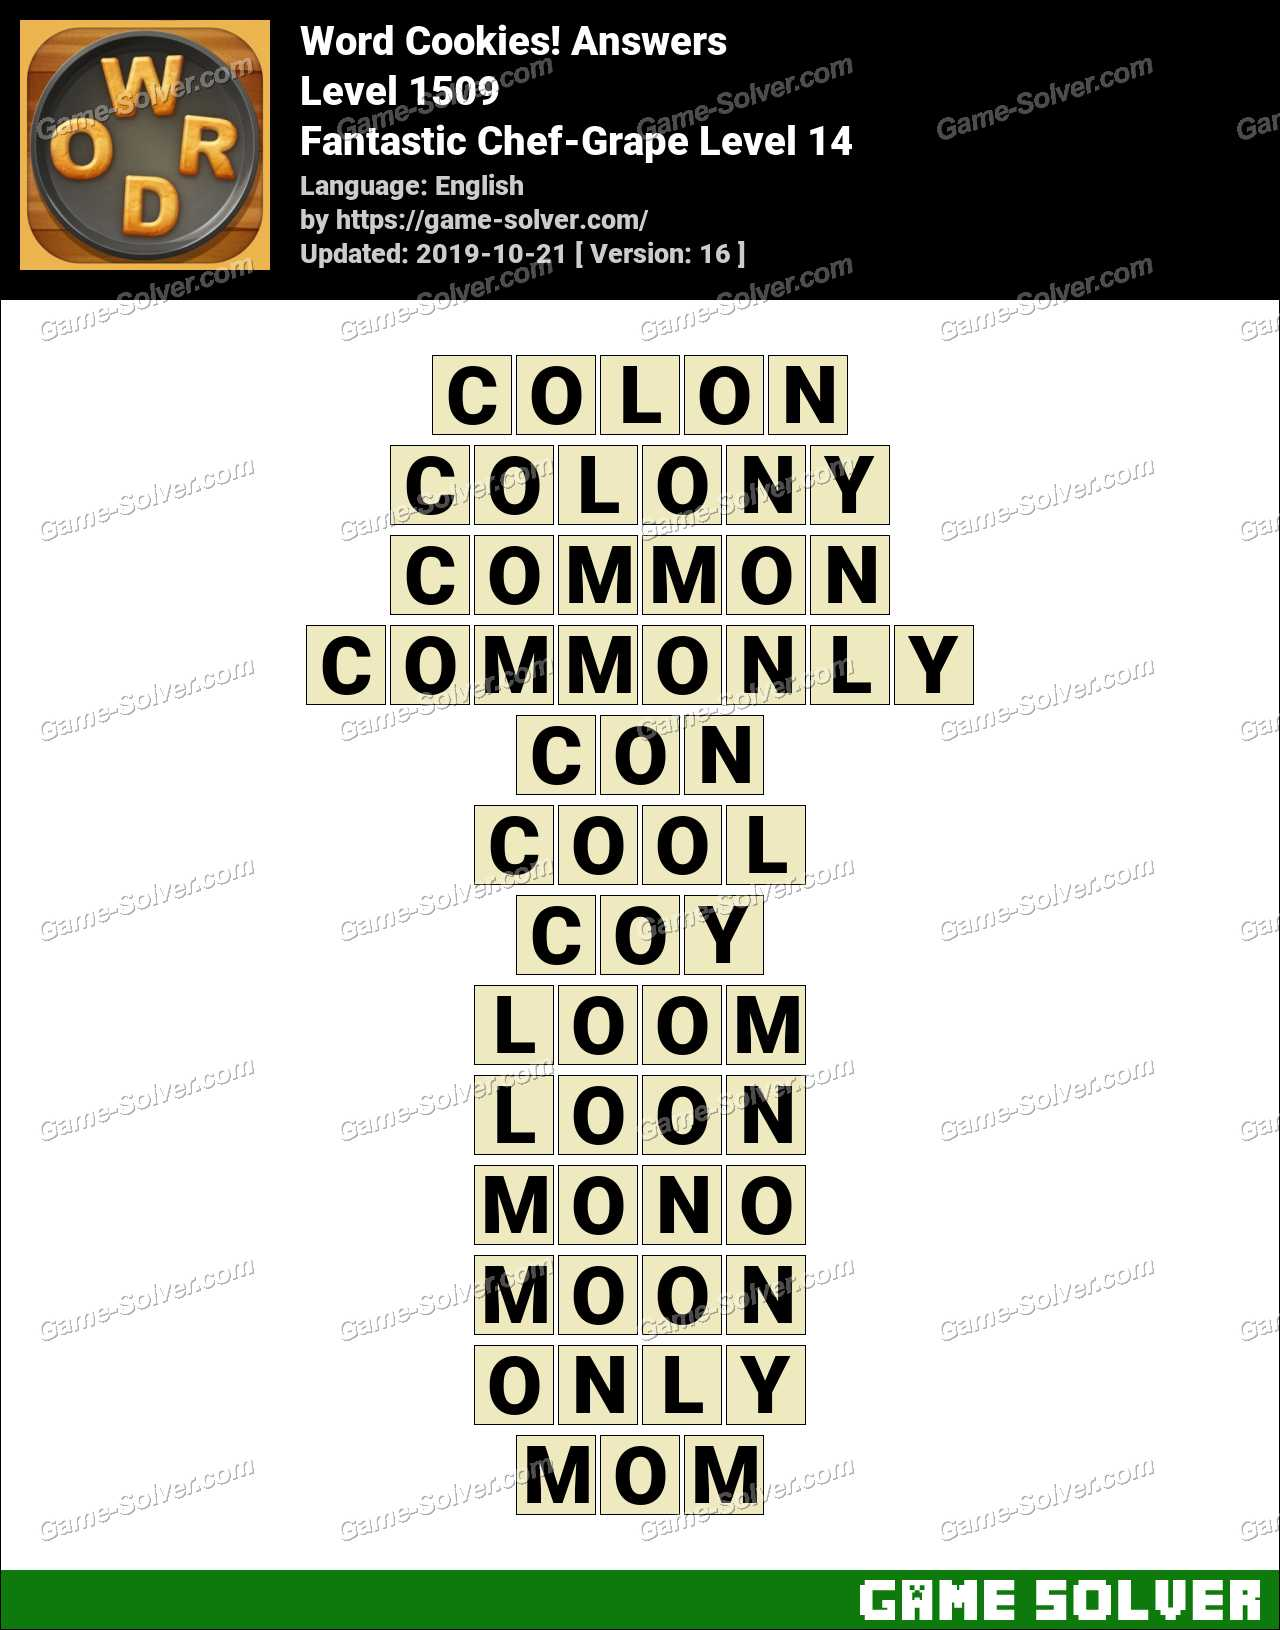 Word Cookies Fantastic Chef-Grape Level 14 Answers